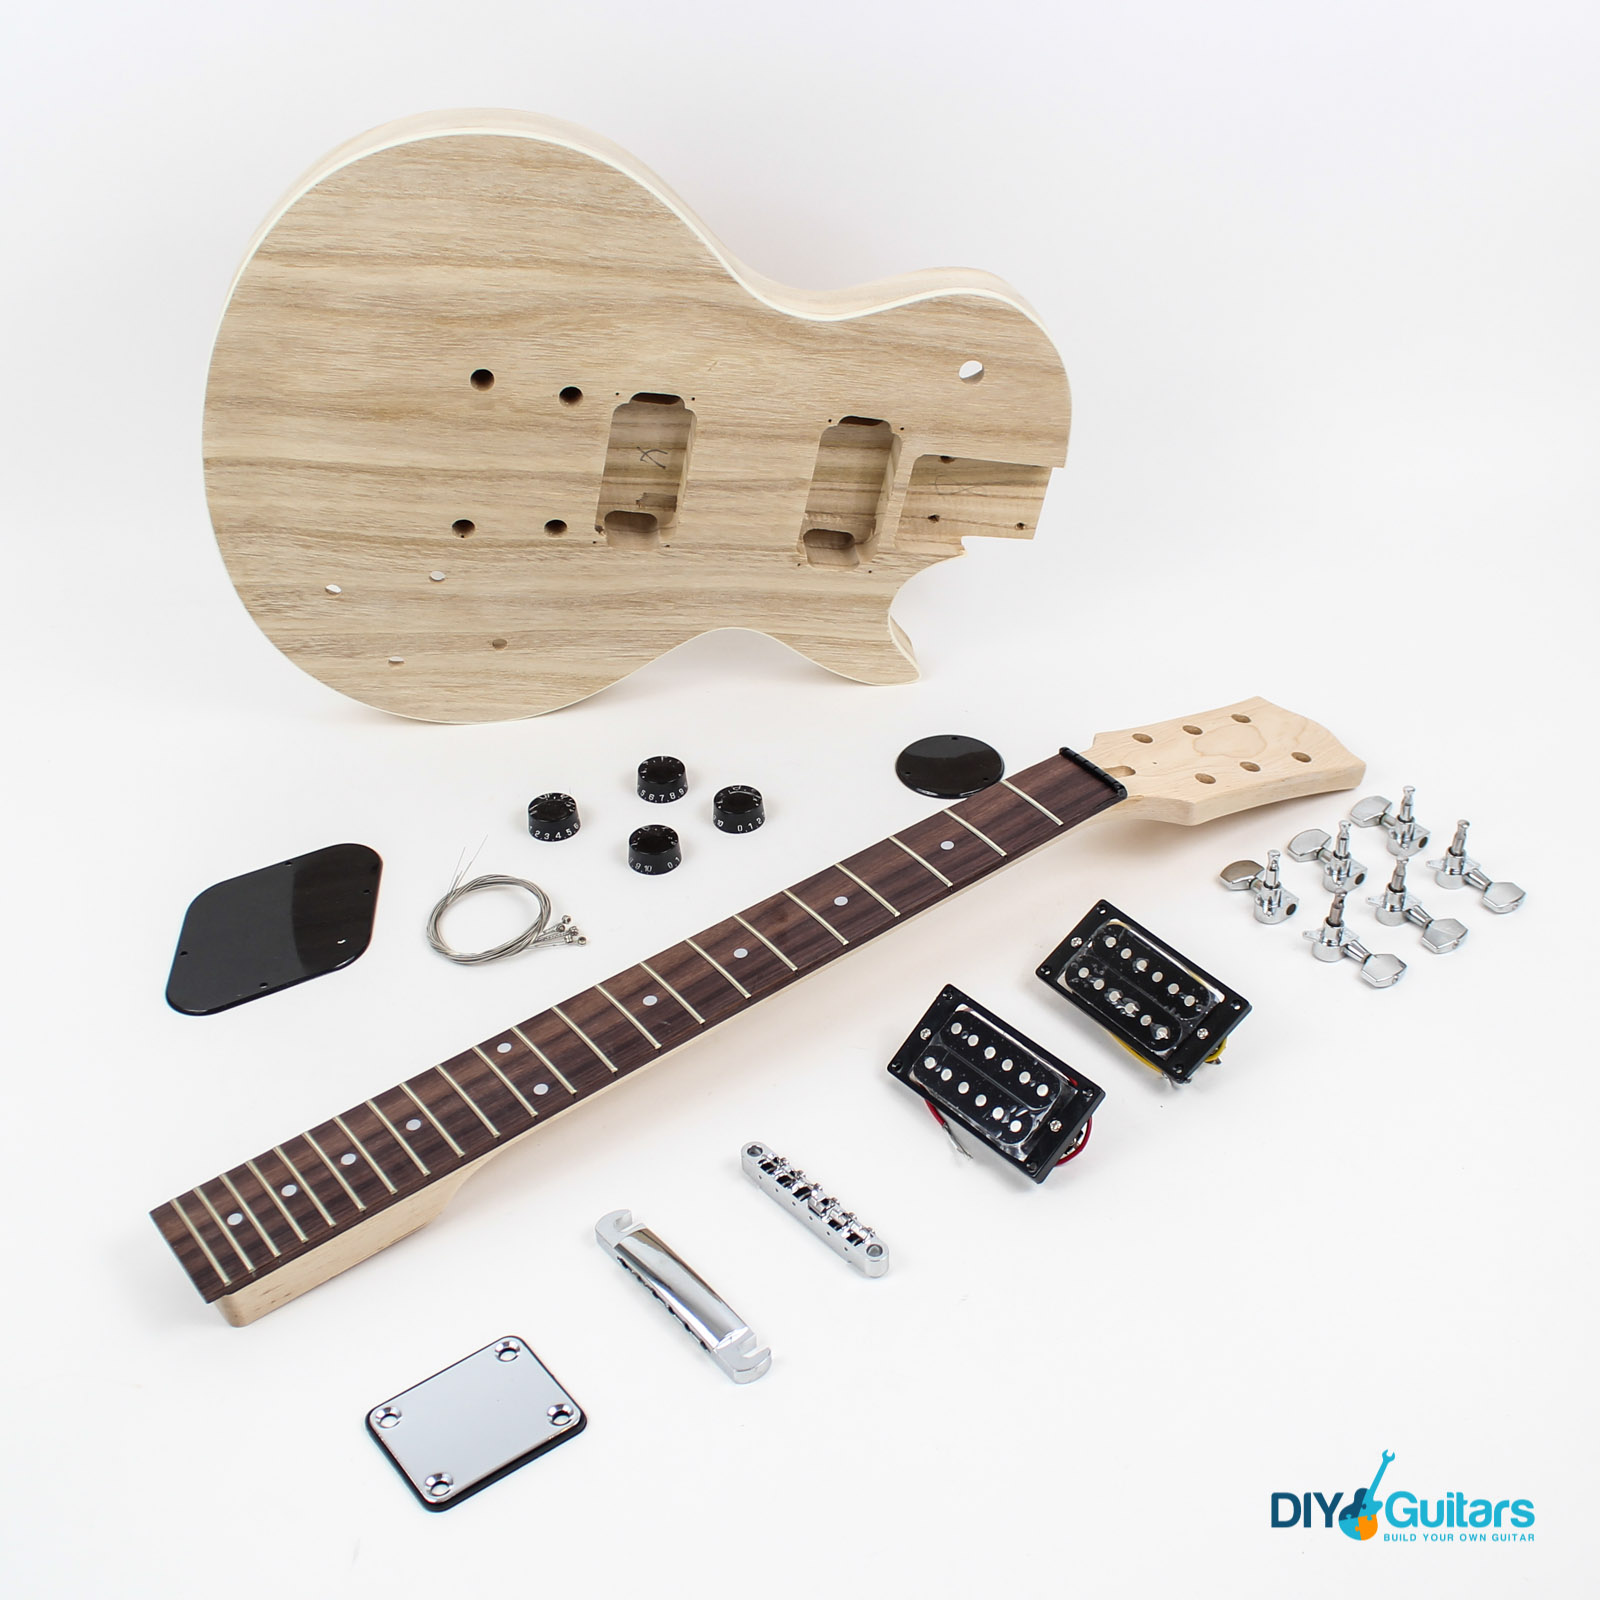 Gibson style guitar kits diy guitars main components solutioingenieria Image collections